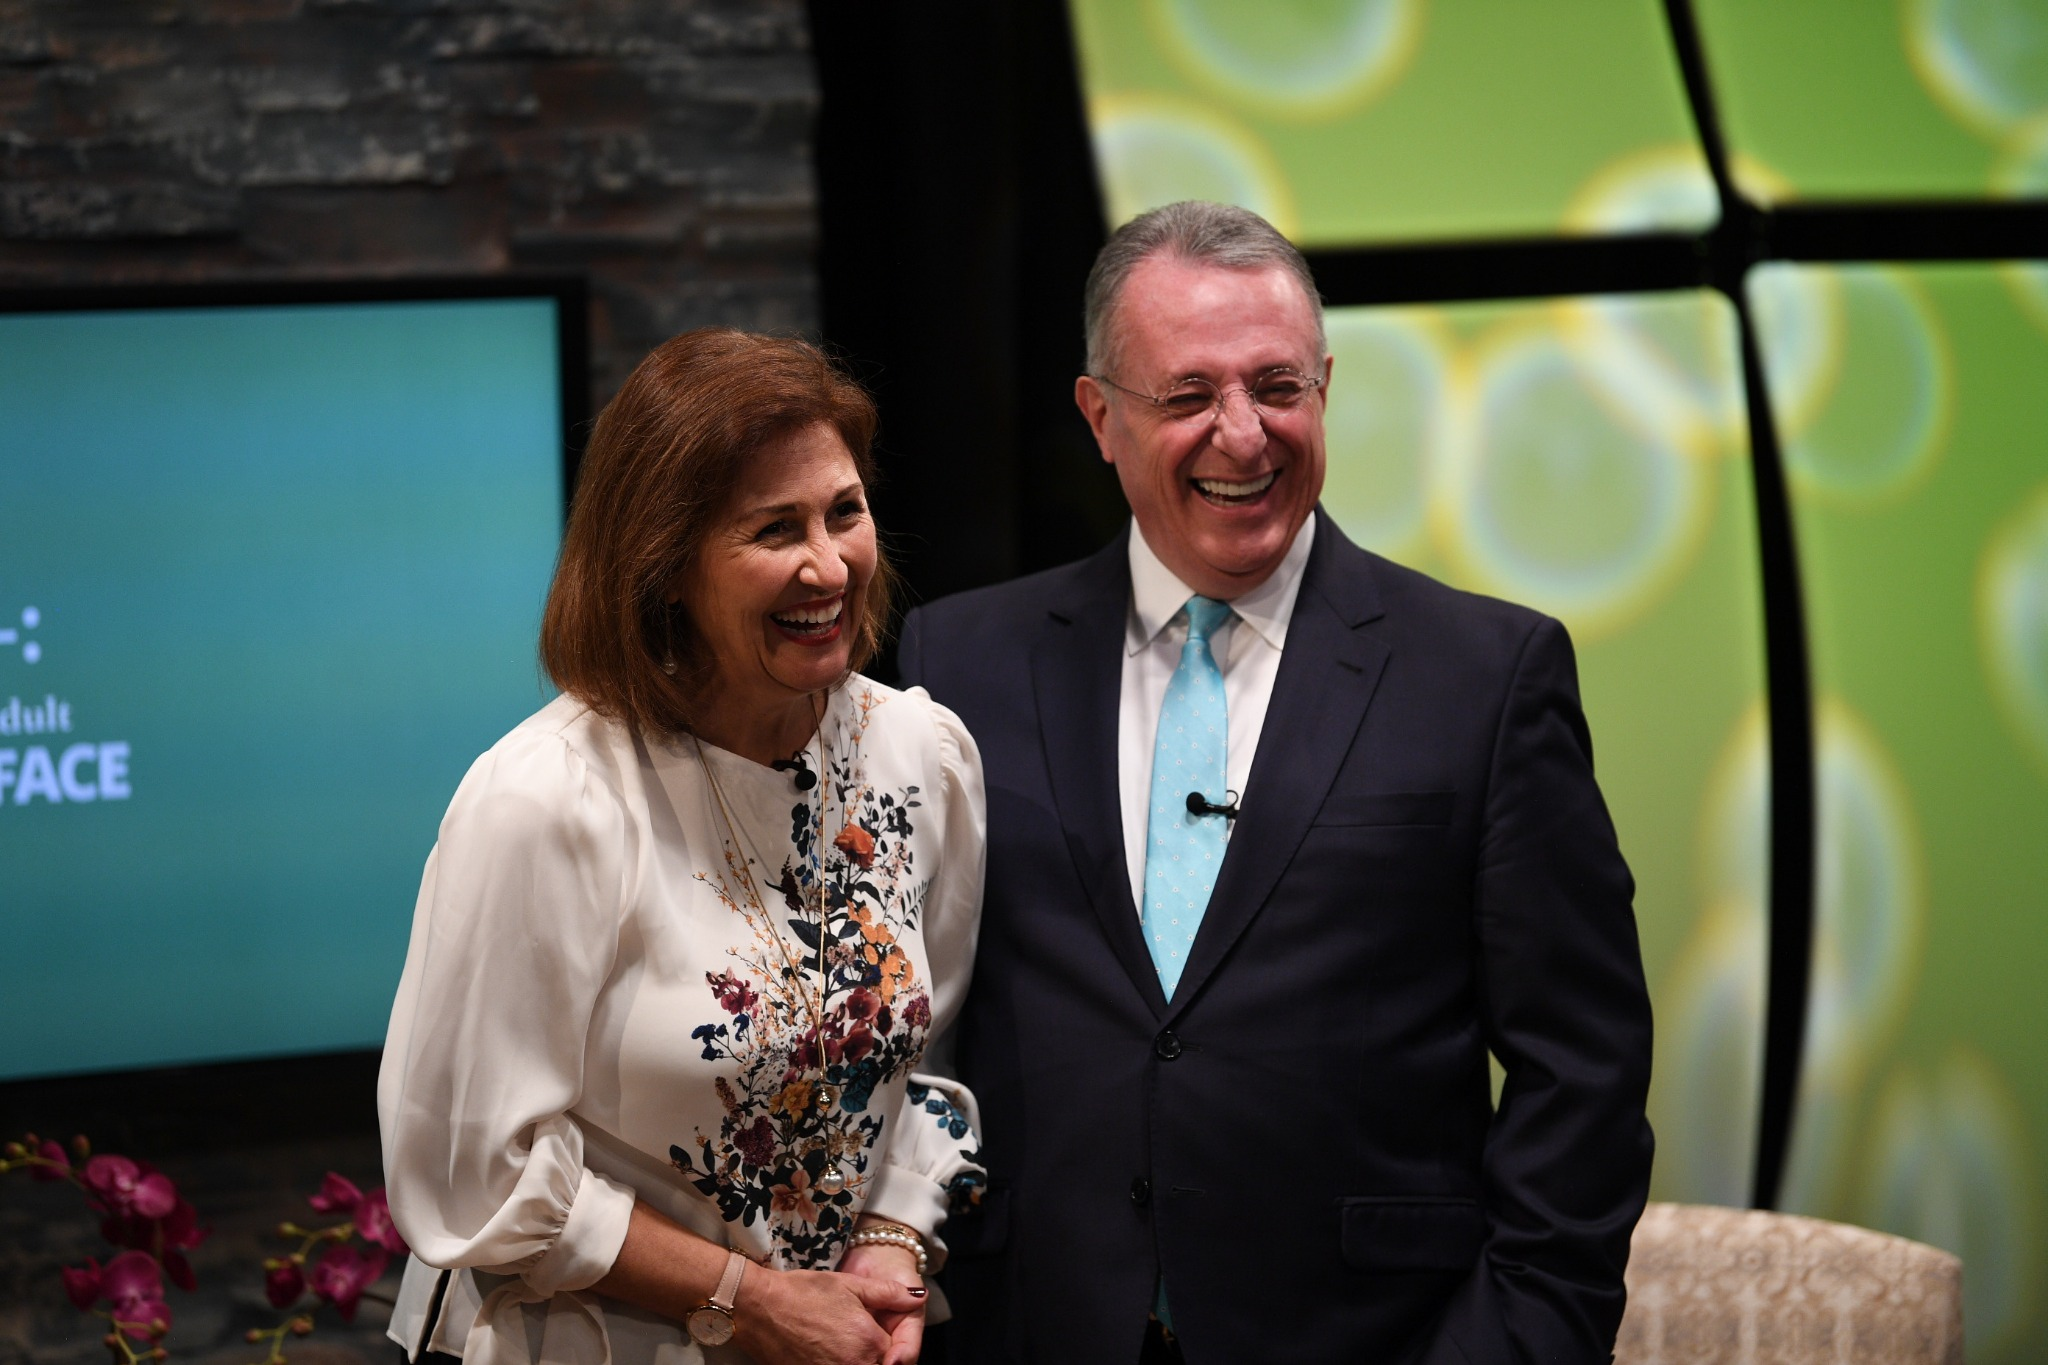 Elder Ulisses Soares of the Quorum of the Twelve Apostles introduces his wife, Rosana, to the audience of young adults at the Worldwide Devotional Face to Face broadcast on Sunday, September 15, 2019.